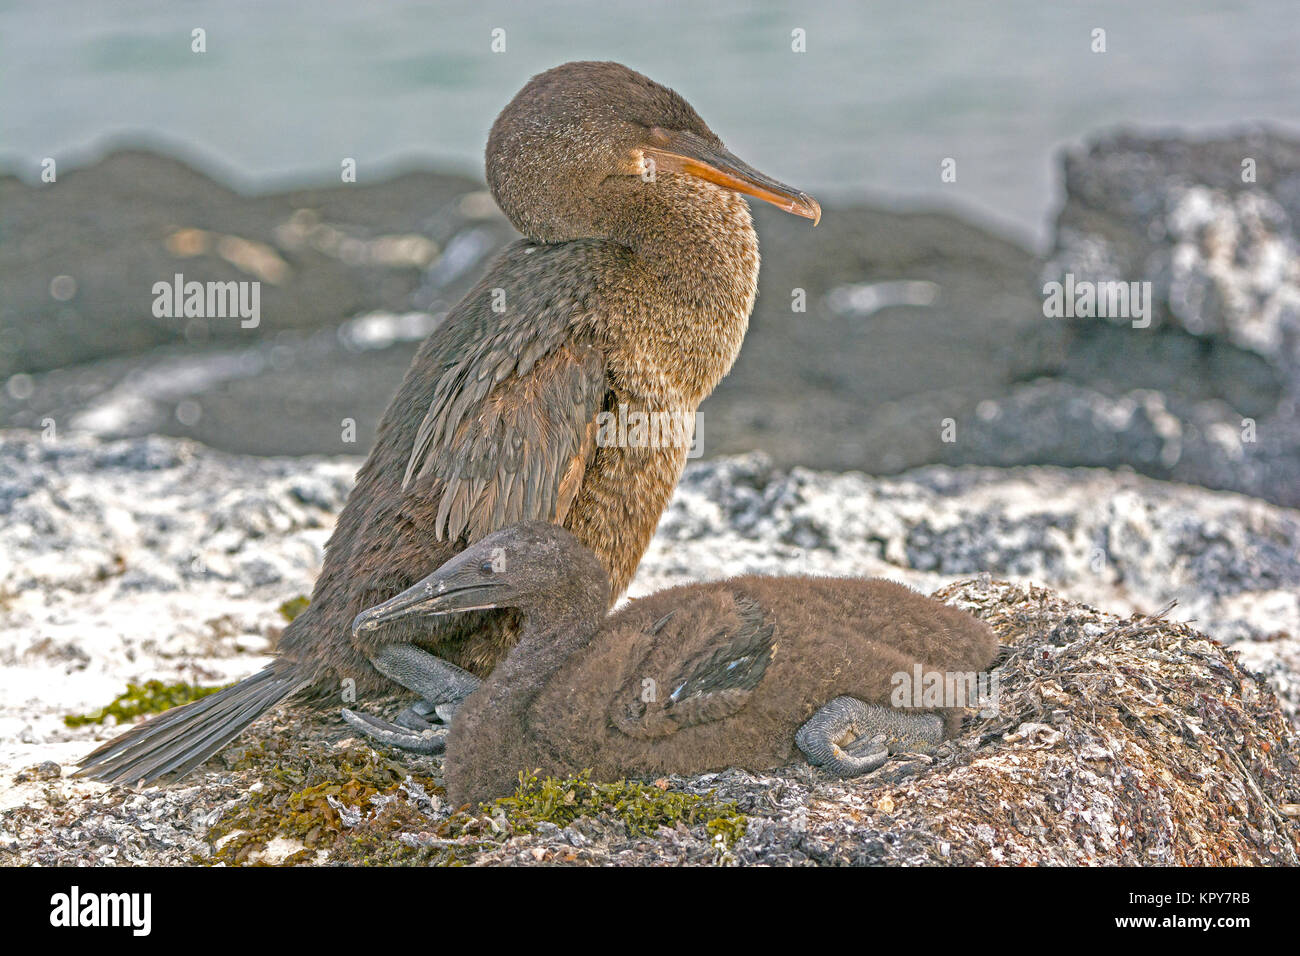 Flightless Cormorant and Its Baby on its Nest - Stock Image